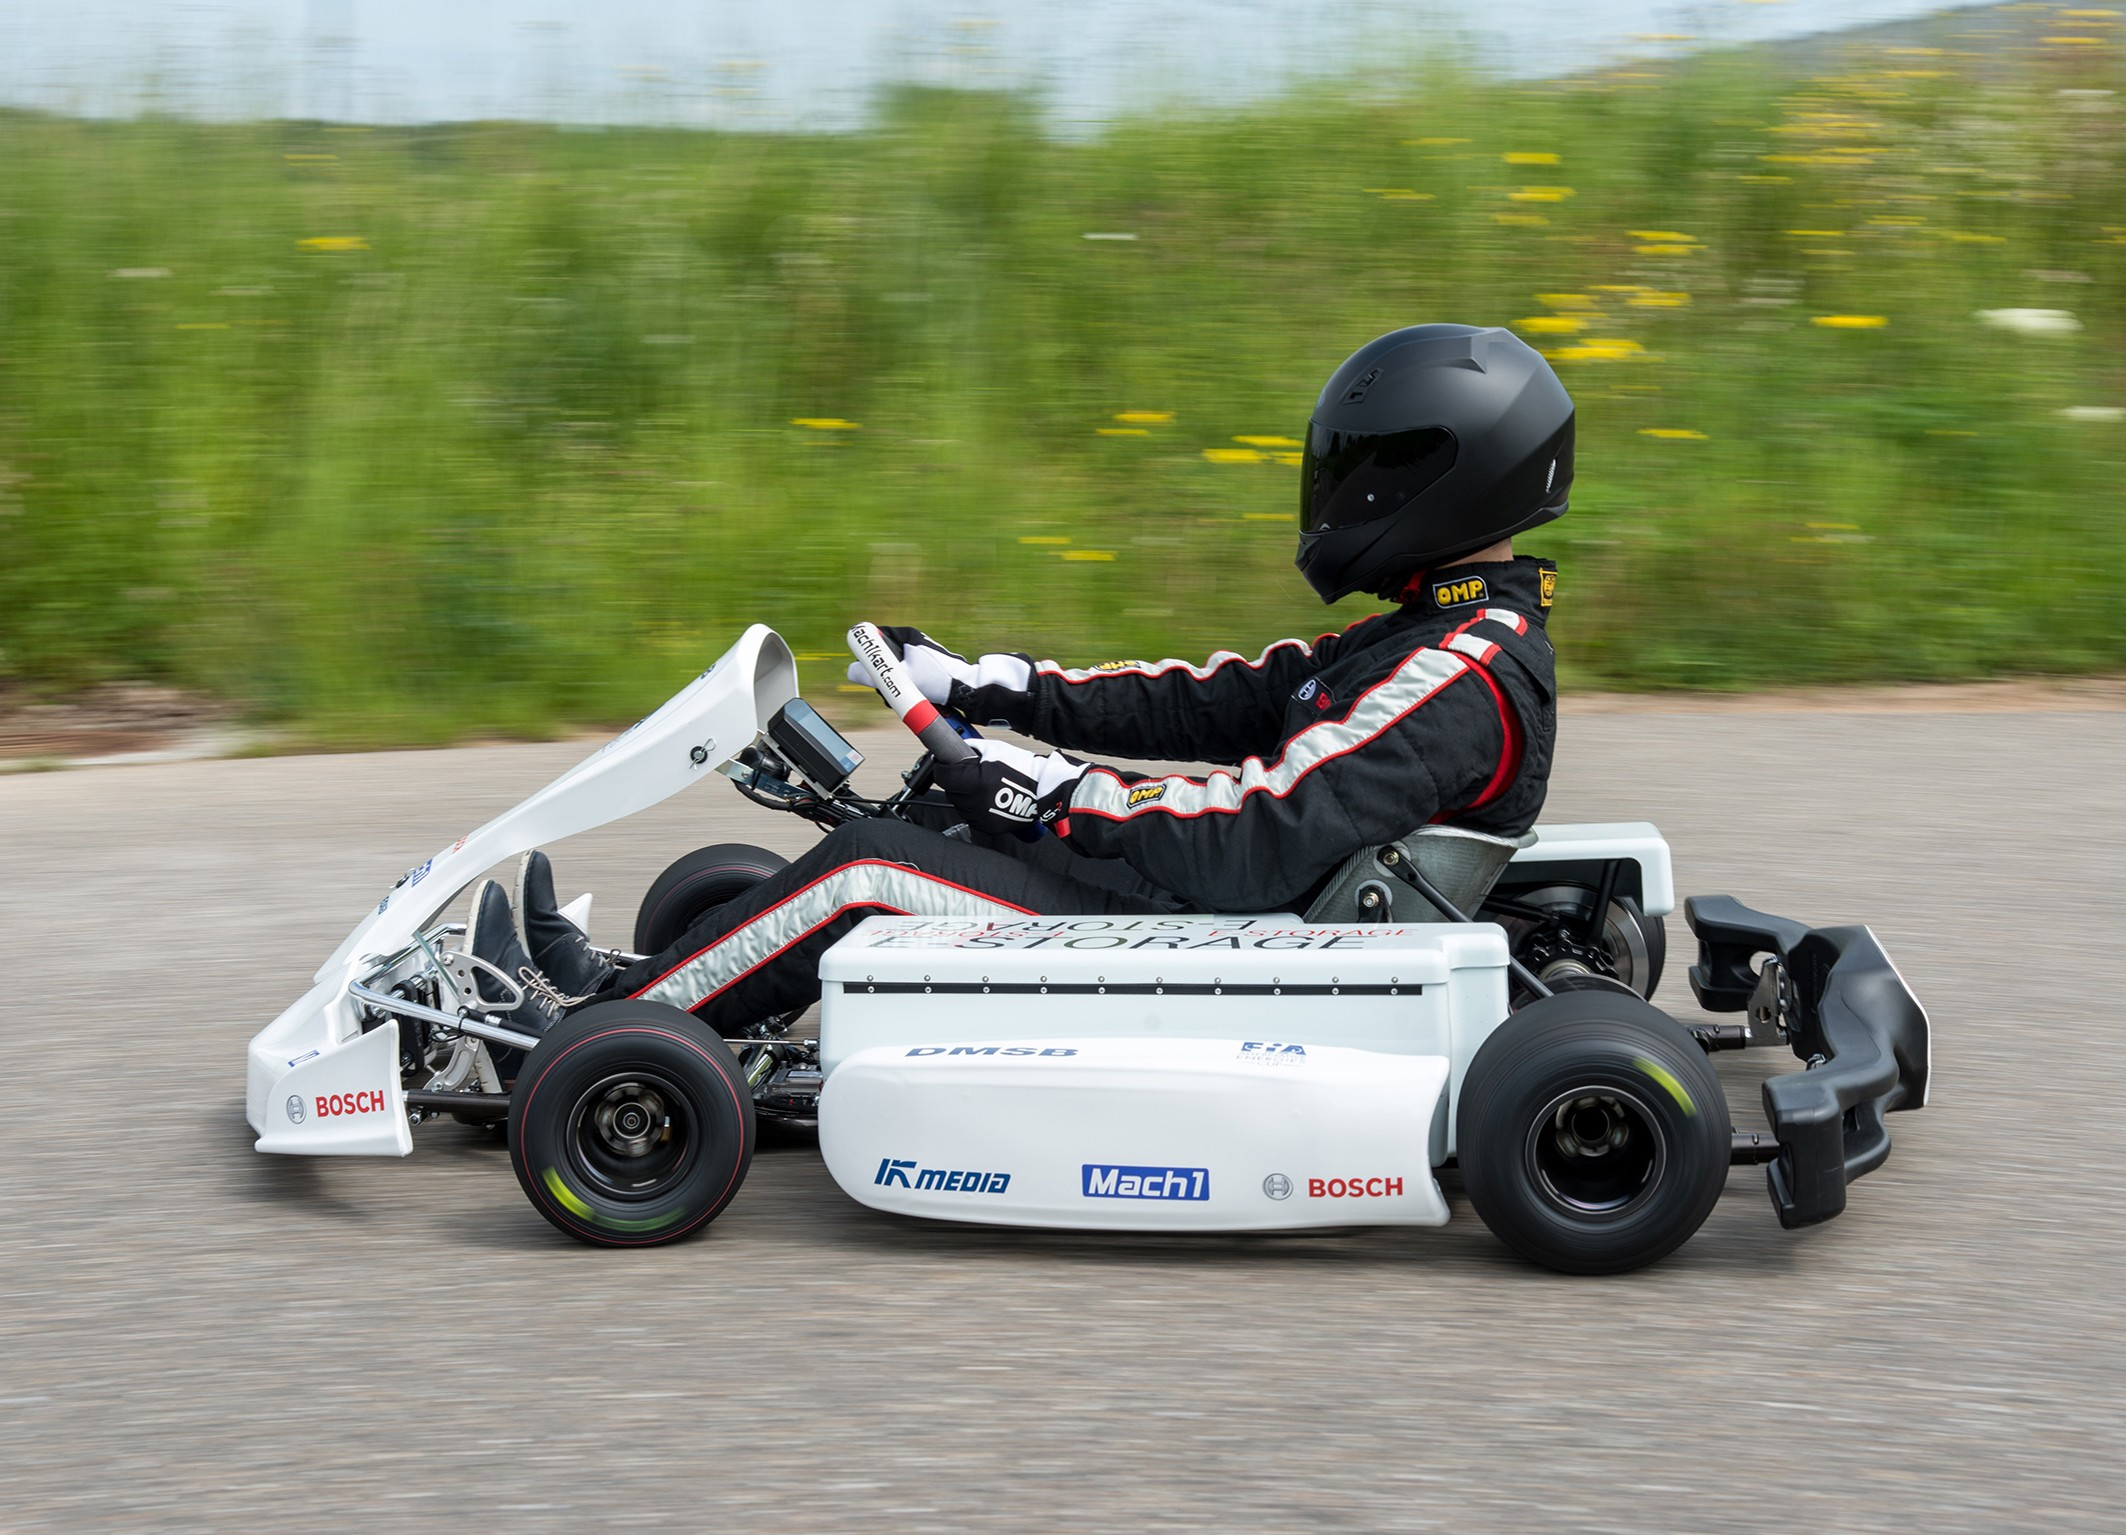 Bosch makes racing karts clean and quiet